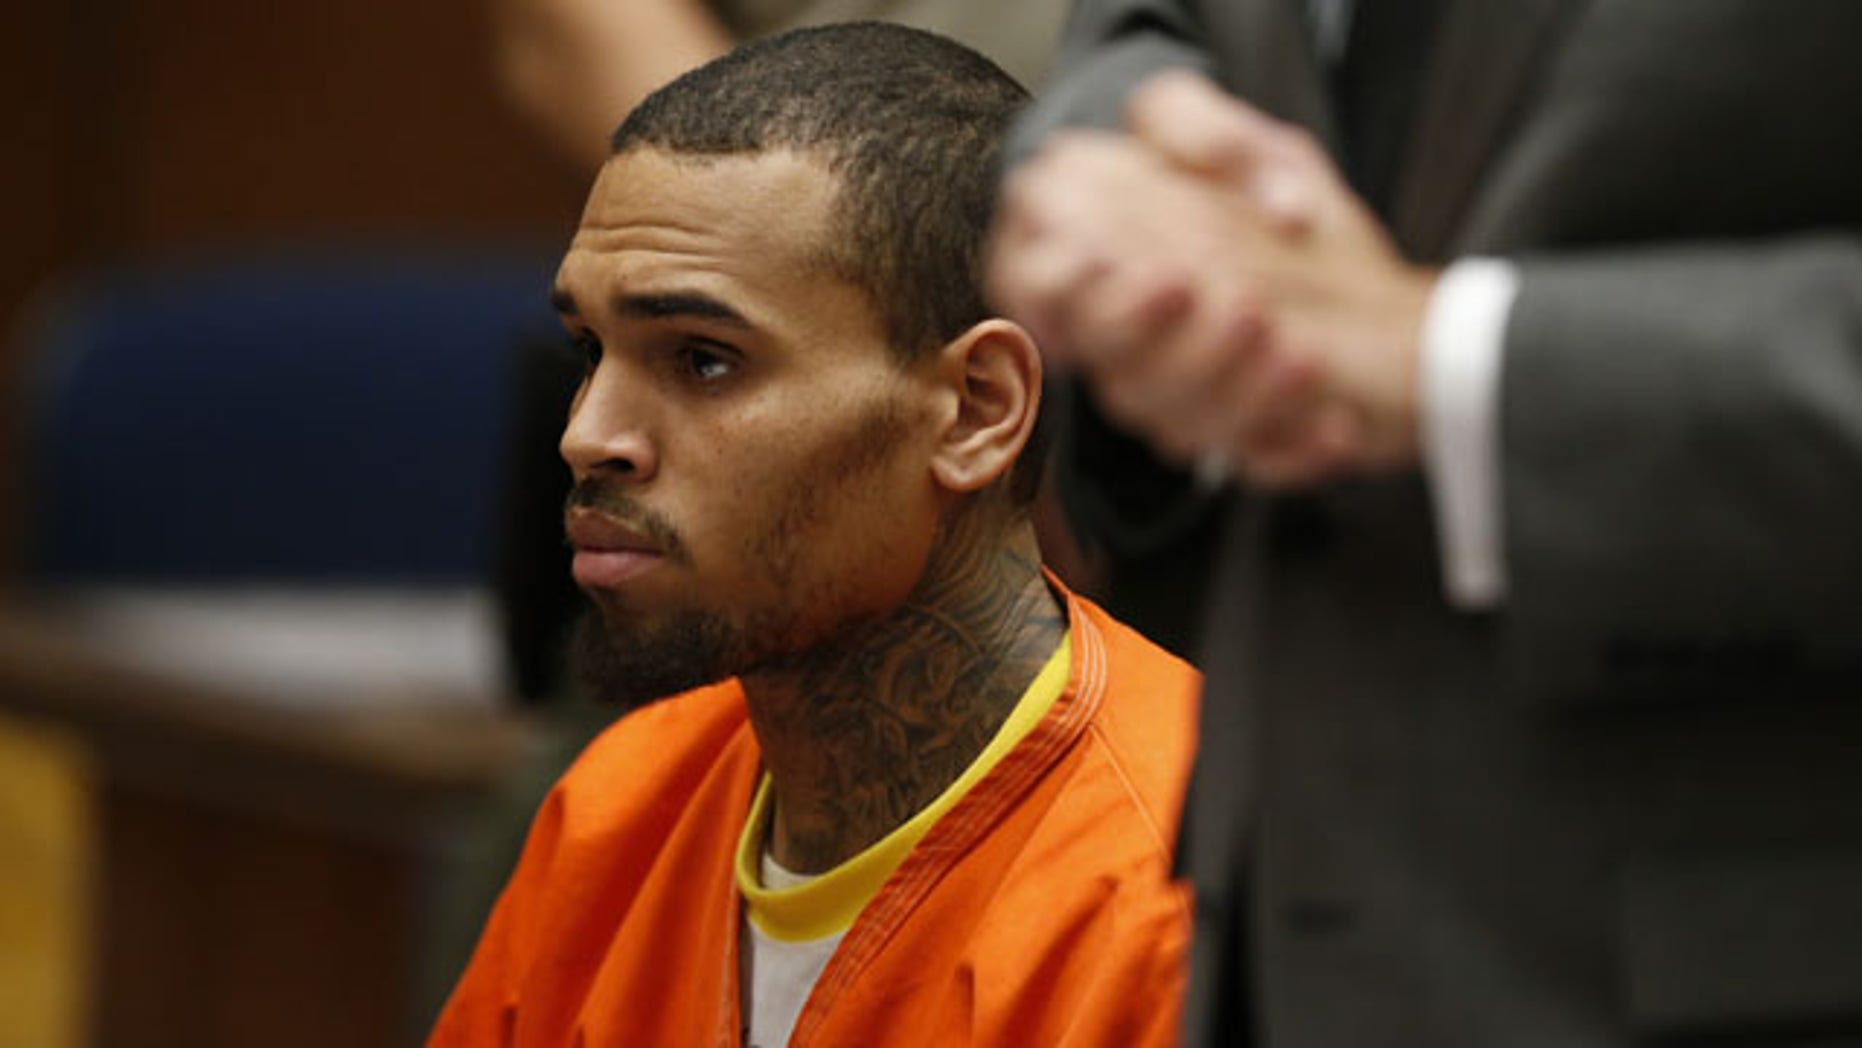 March 17, 2014: R&B singer Chris Brown, center, appears in Los Angeles Superior Court with his attorney Mark Geragos, right. Brown will spend another month in jail after a judge said Monday he was told the singer made troubling comments in rehab about being good at using guns and knives. (AP Photo/Lucy Nicholson, Pool)